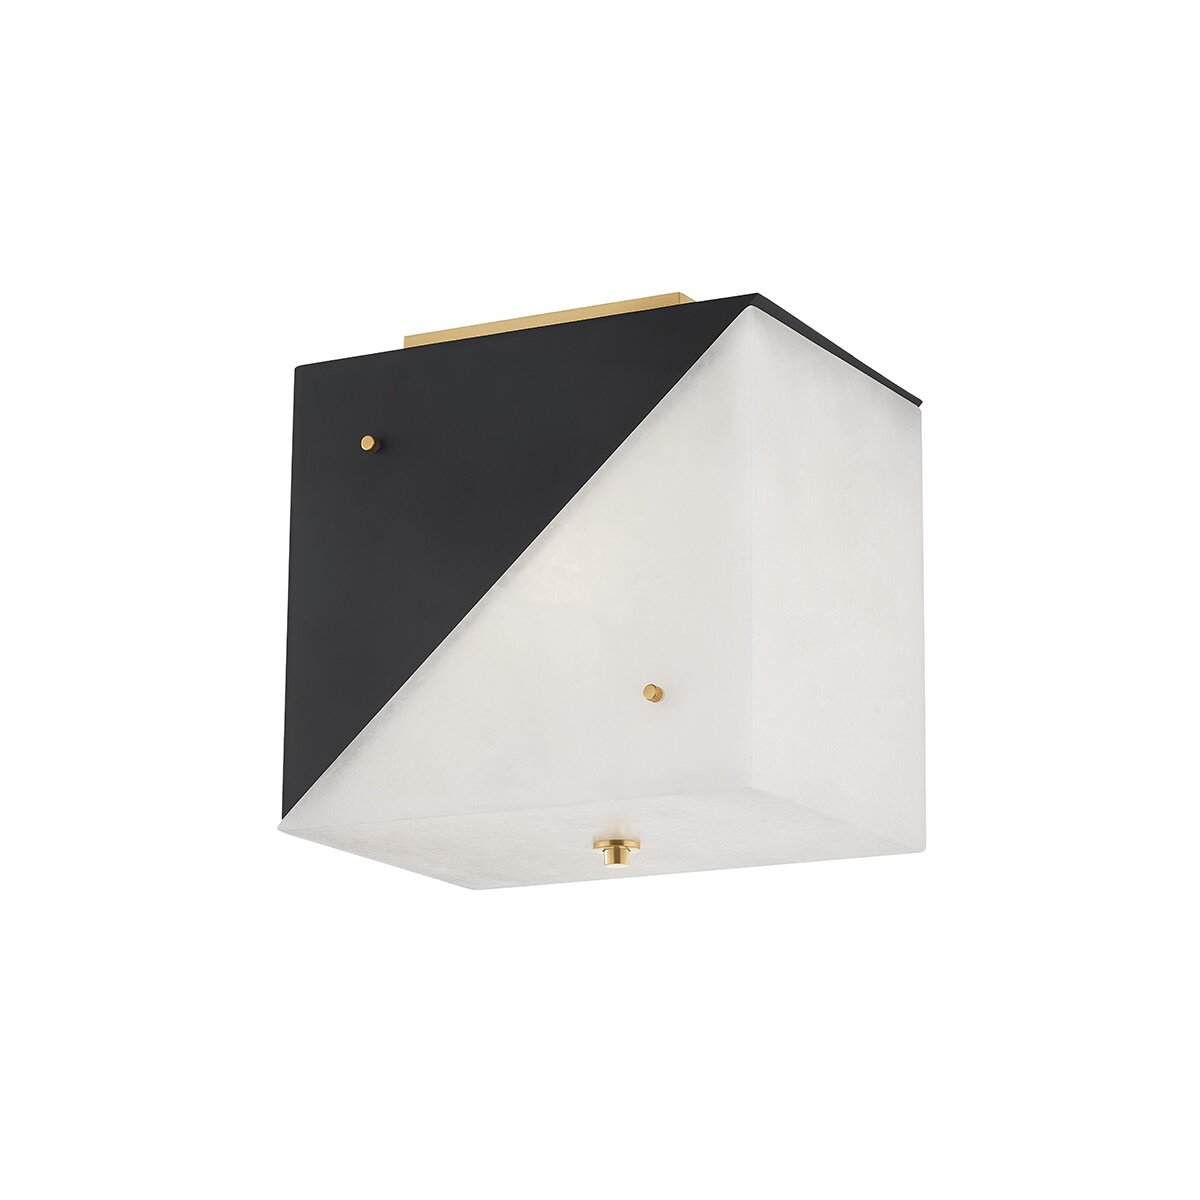 Everly Quinn Tacony 3 Light 8 25 Flush Mount Wayfair